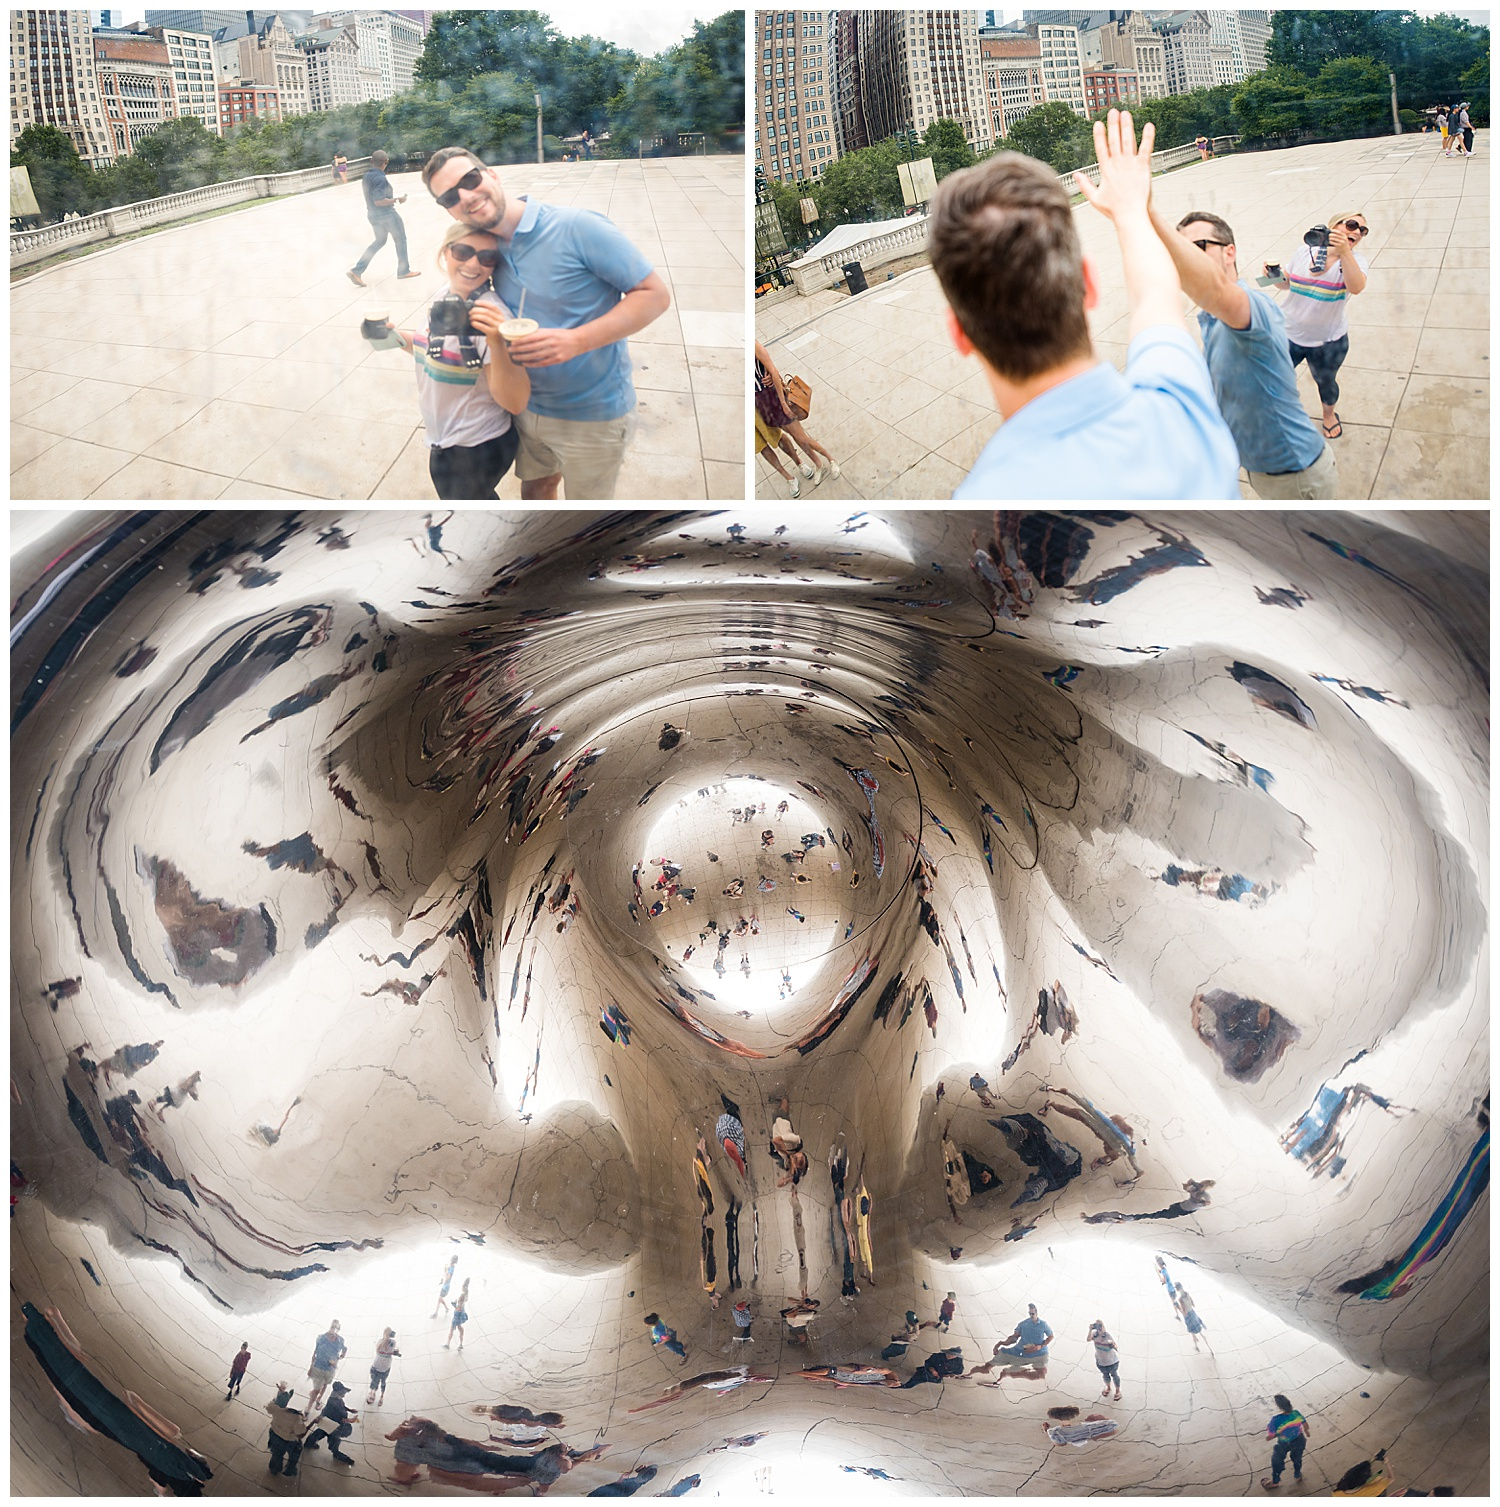 Of course we had to visit The Bean…